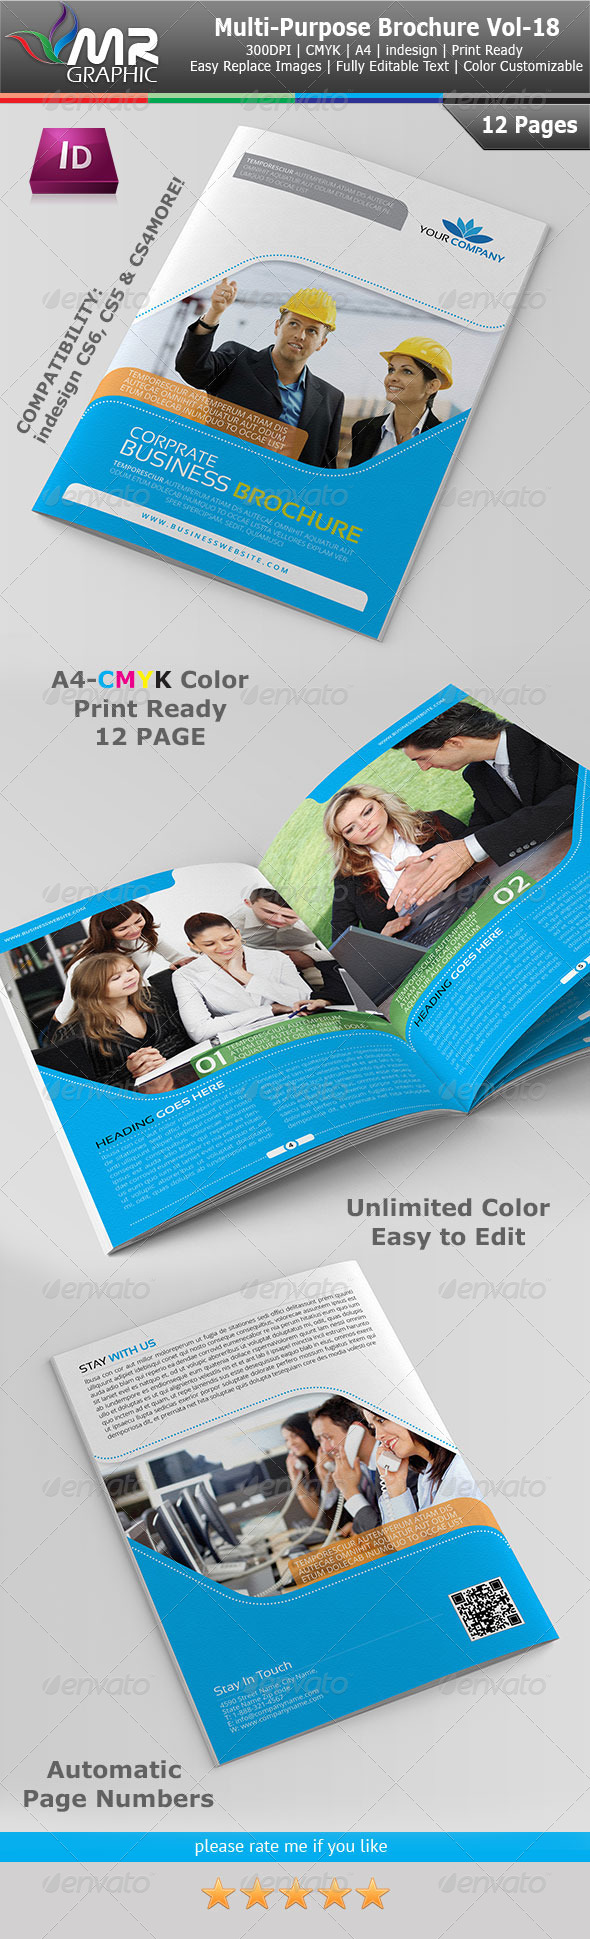 Multipurpose Business Brochure Template Vol-18 - Corporate Brochures